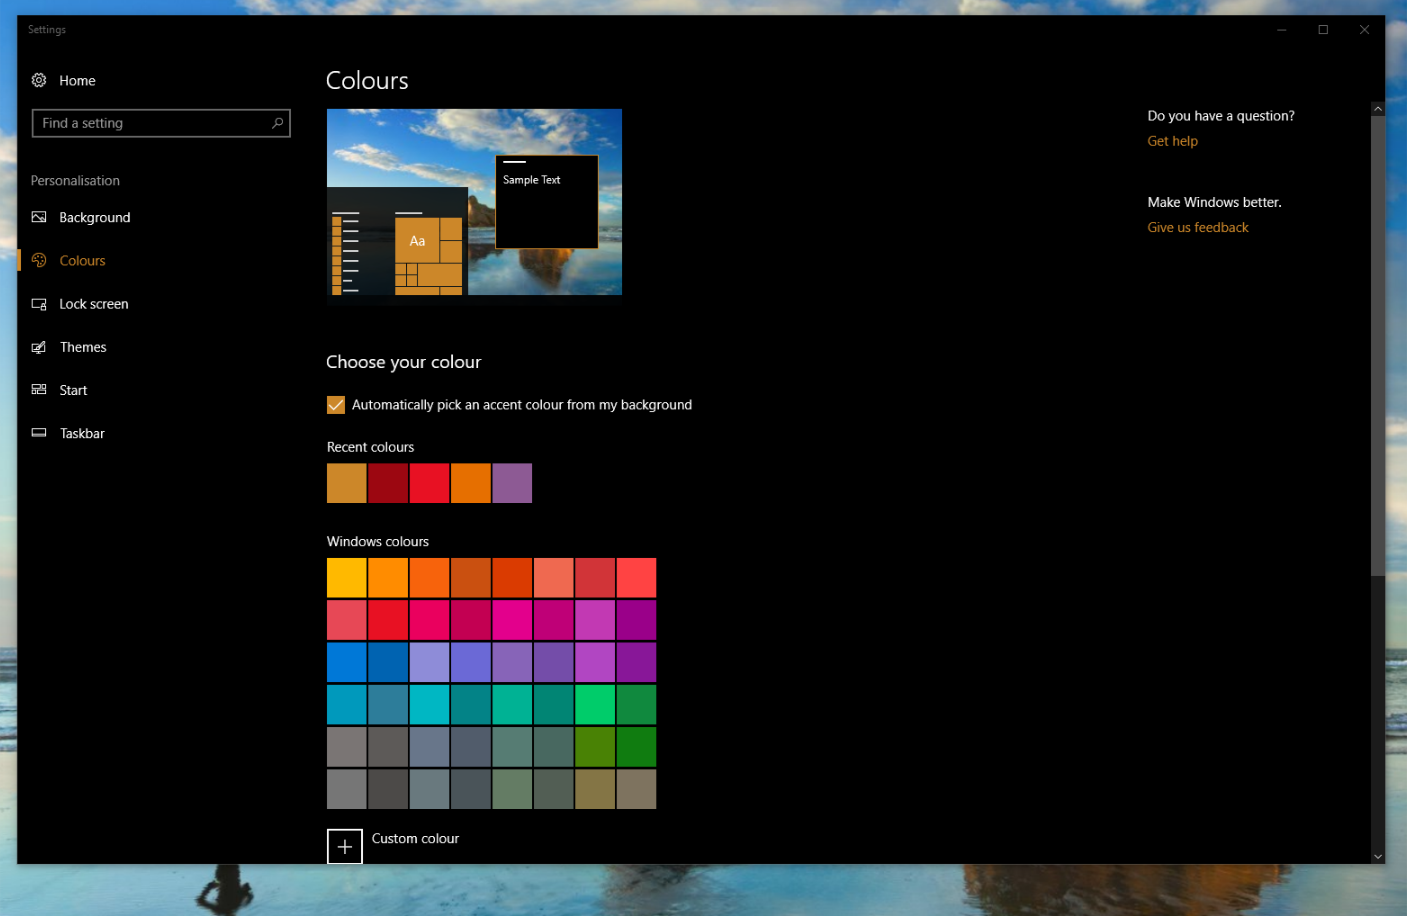 How To Apply Themes To Pcs And Tablets On The Windows 10 Creators Update Mspoweruser